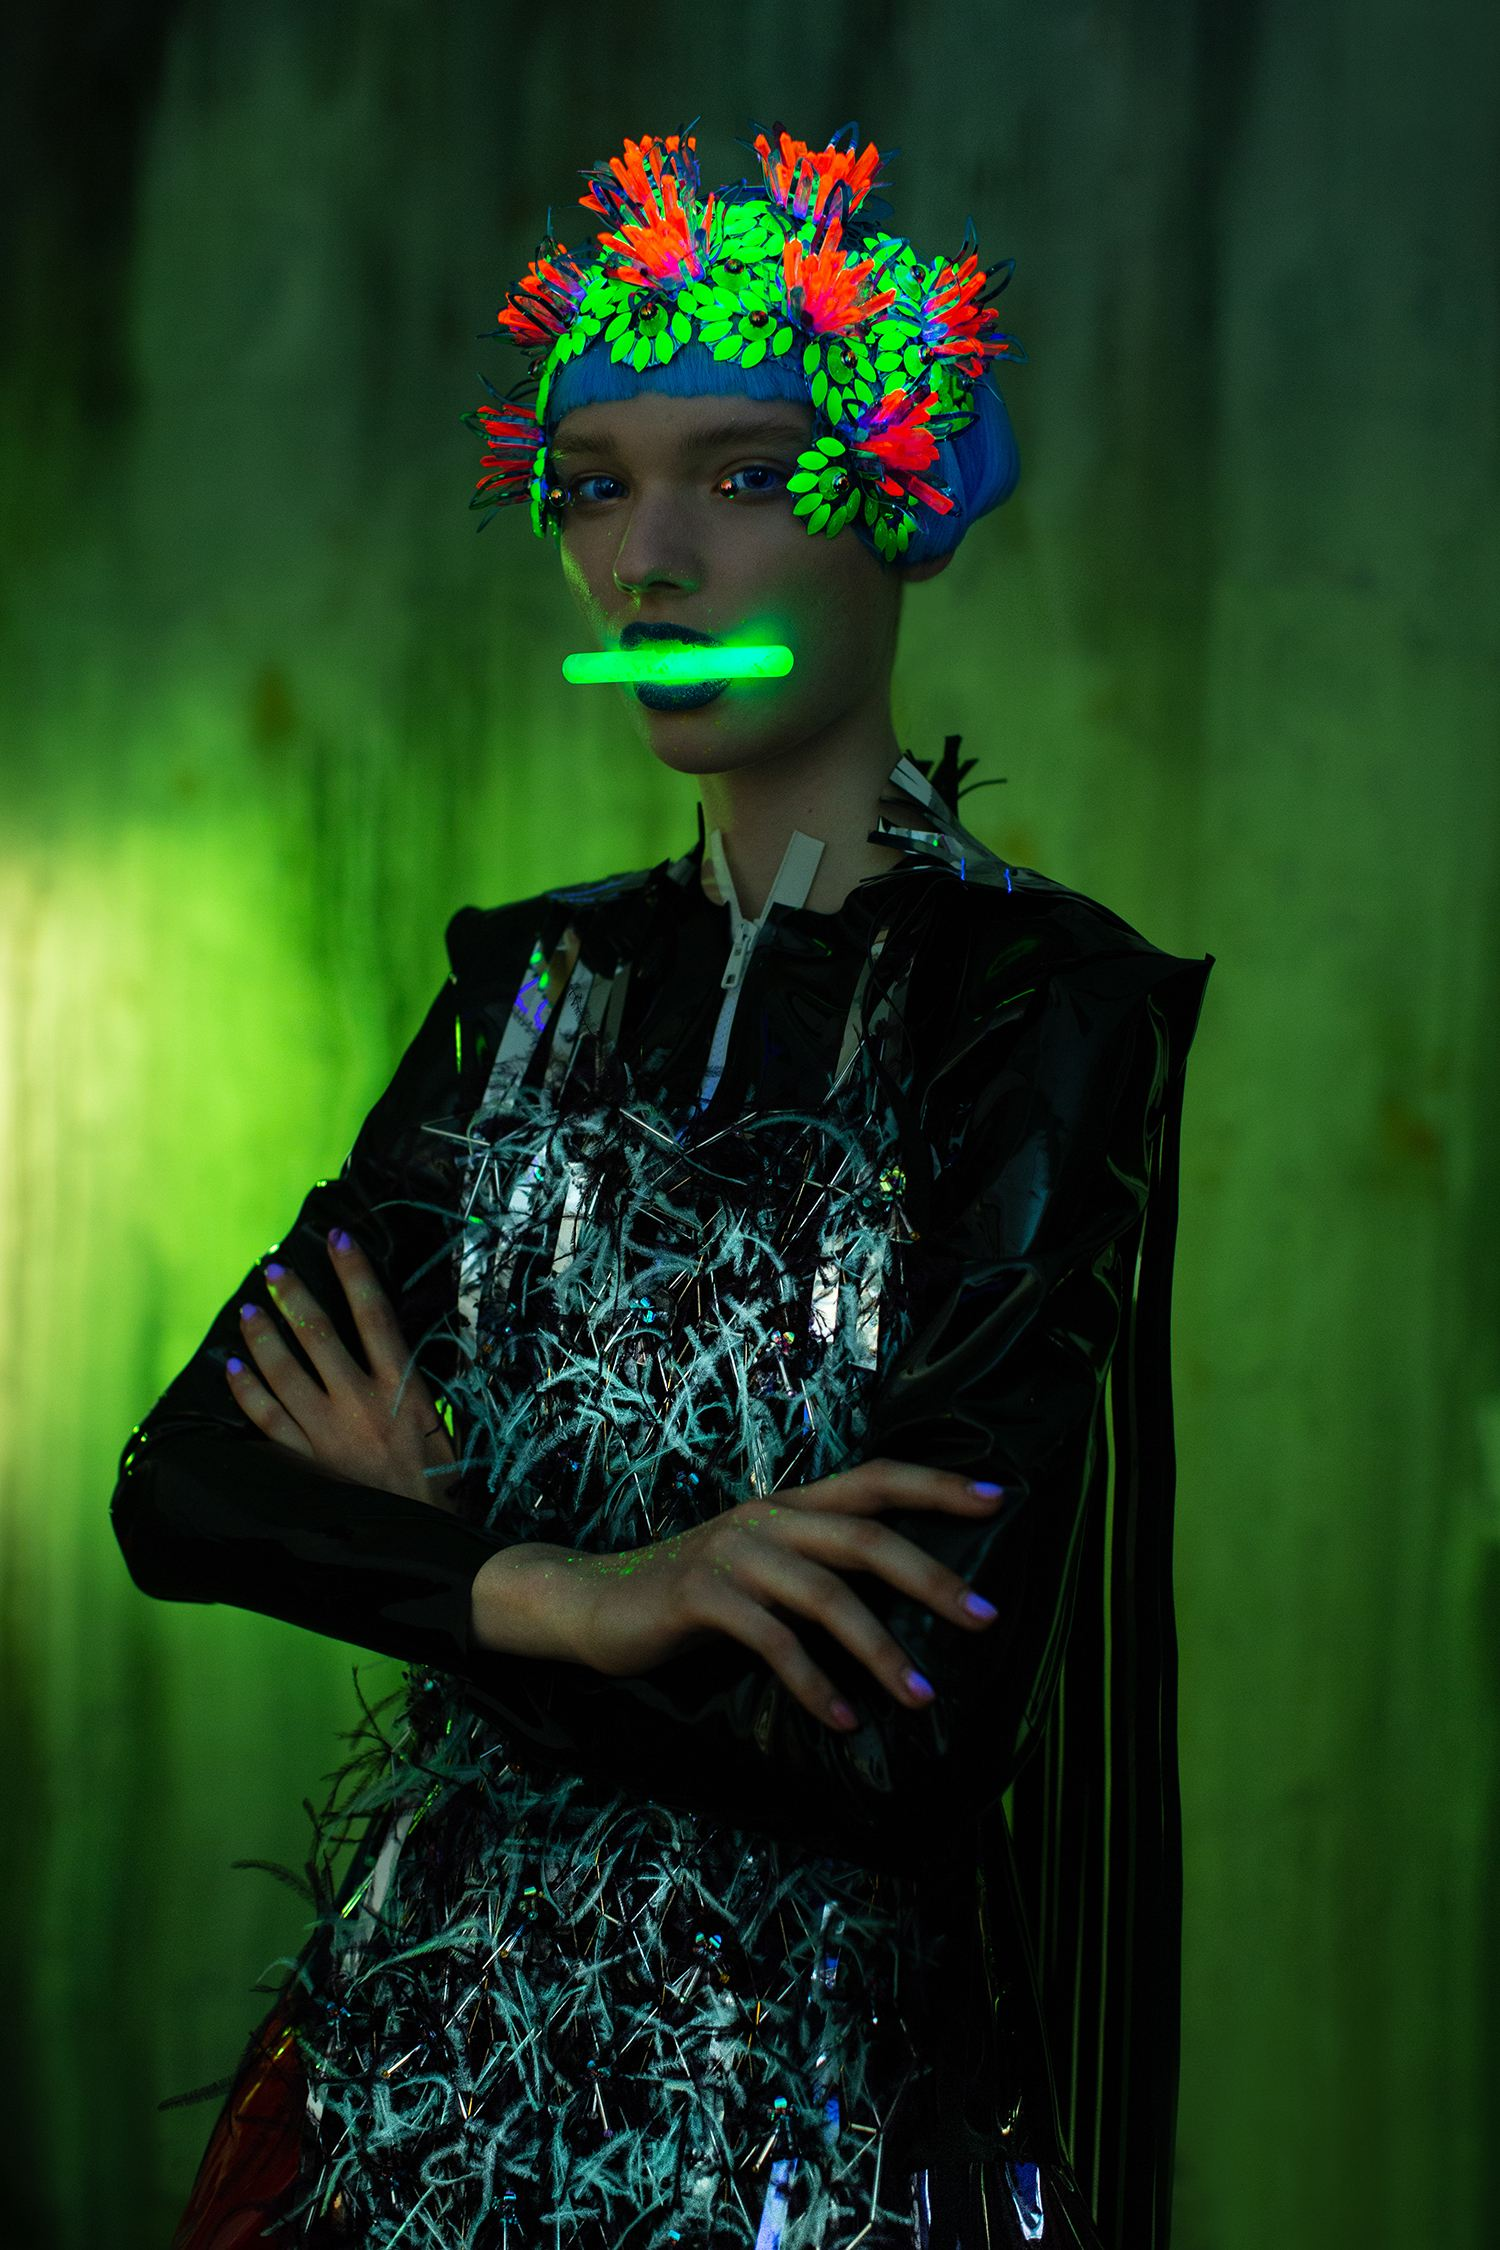 green image, neon portrait of woman